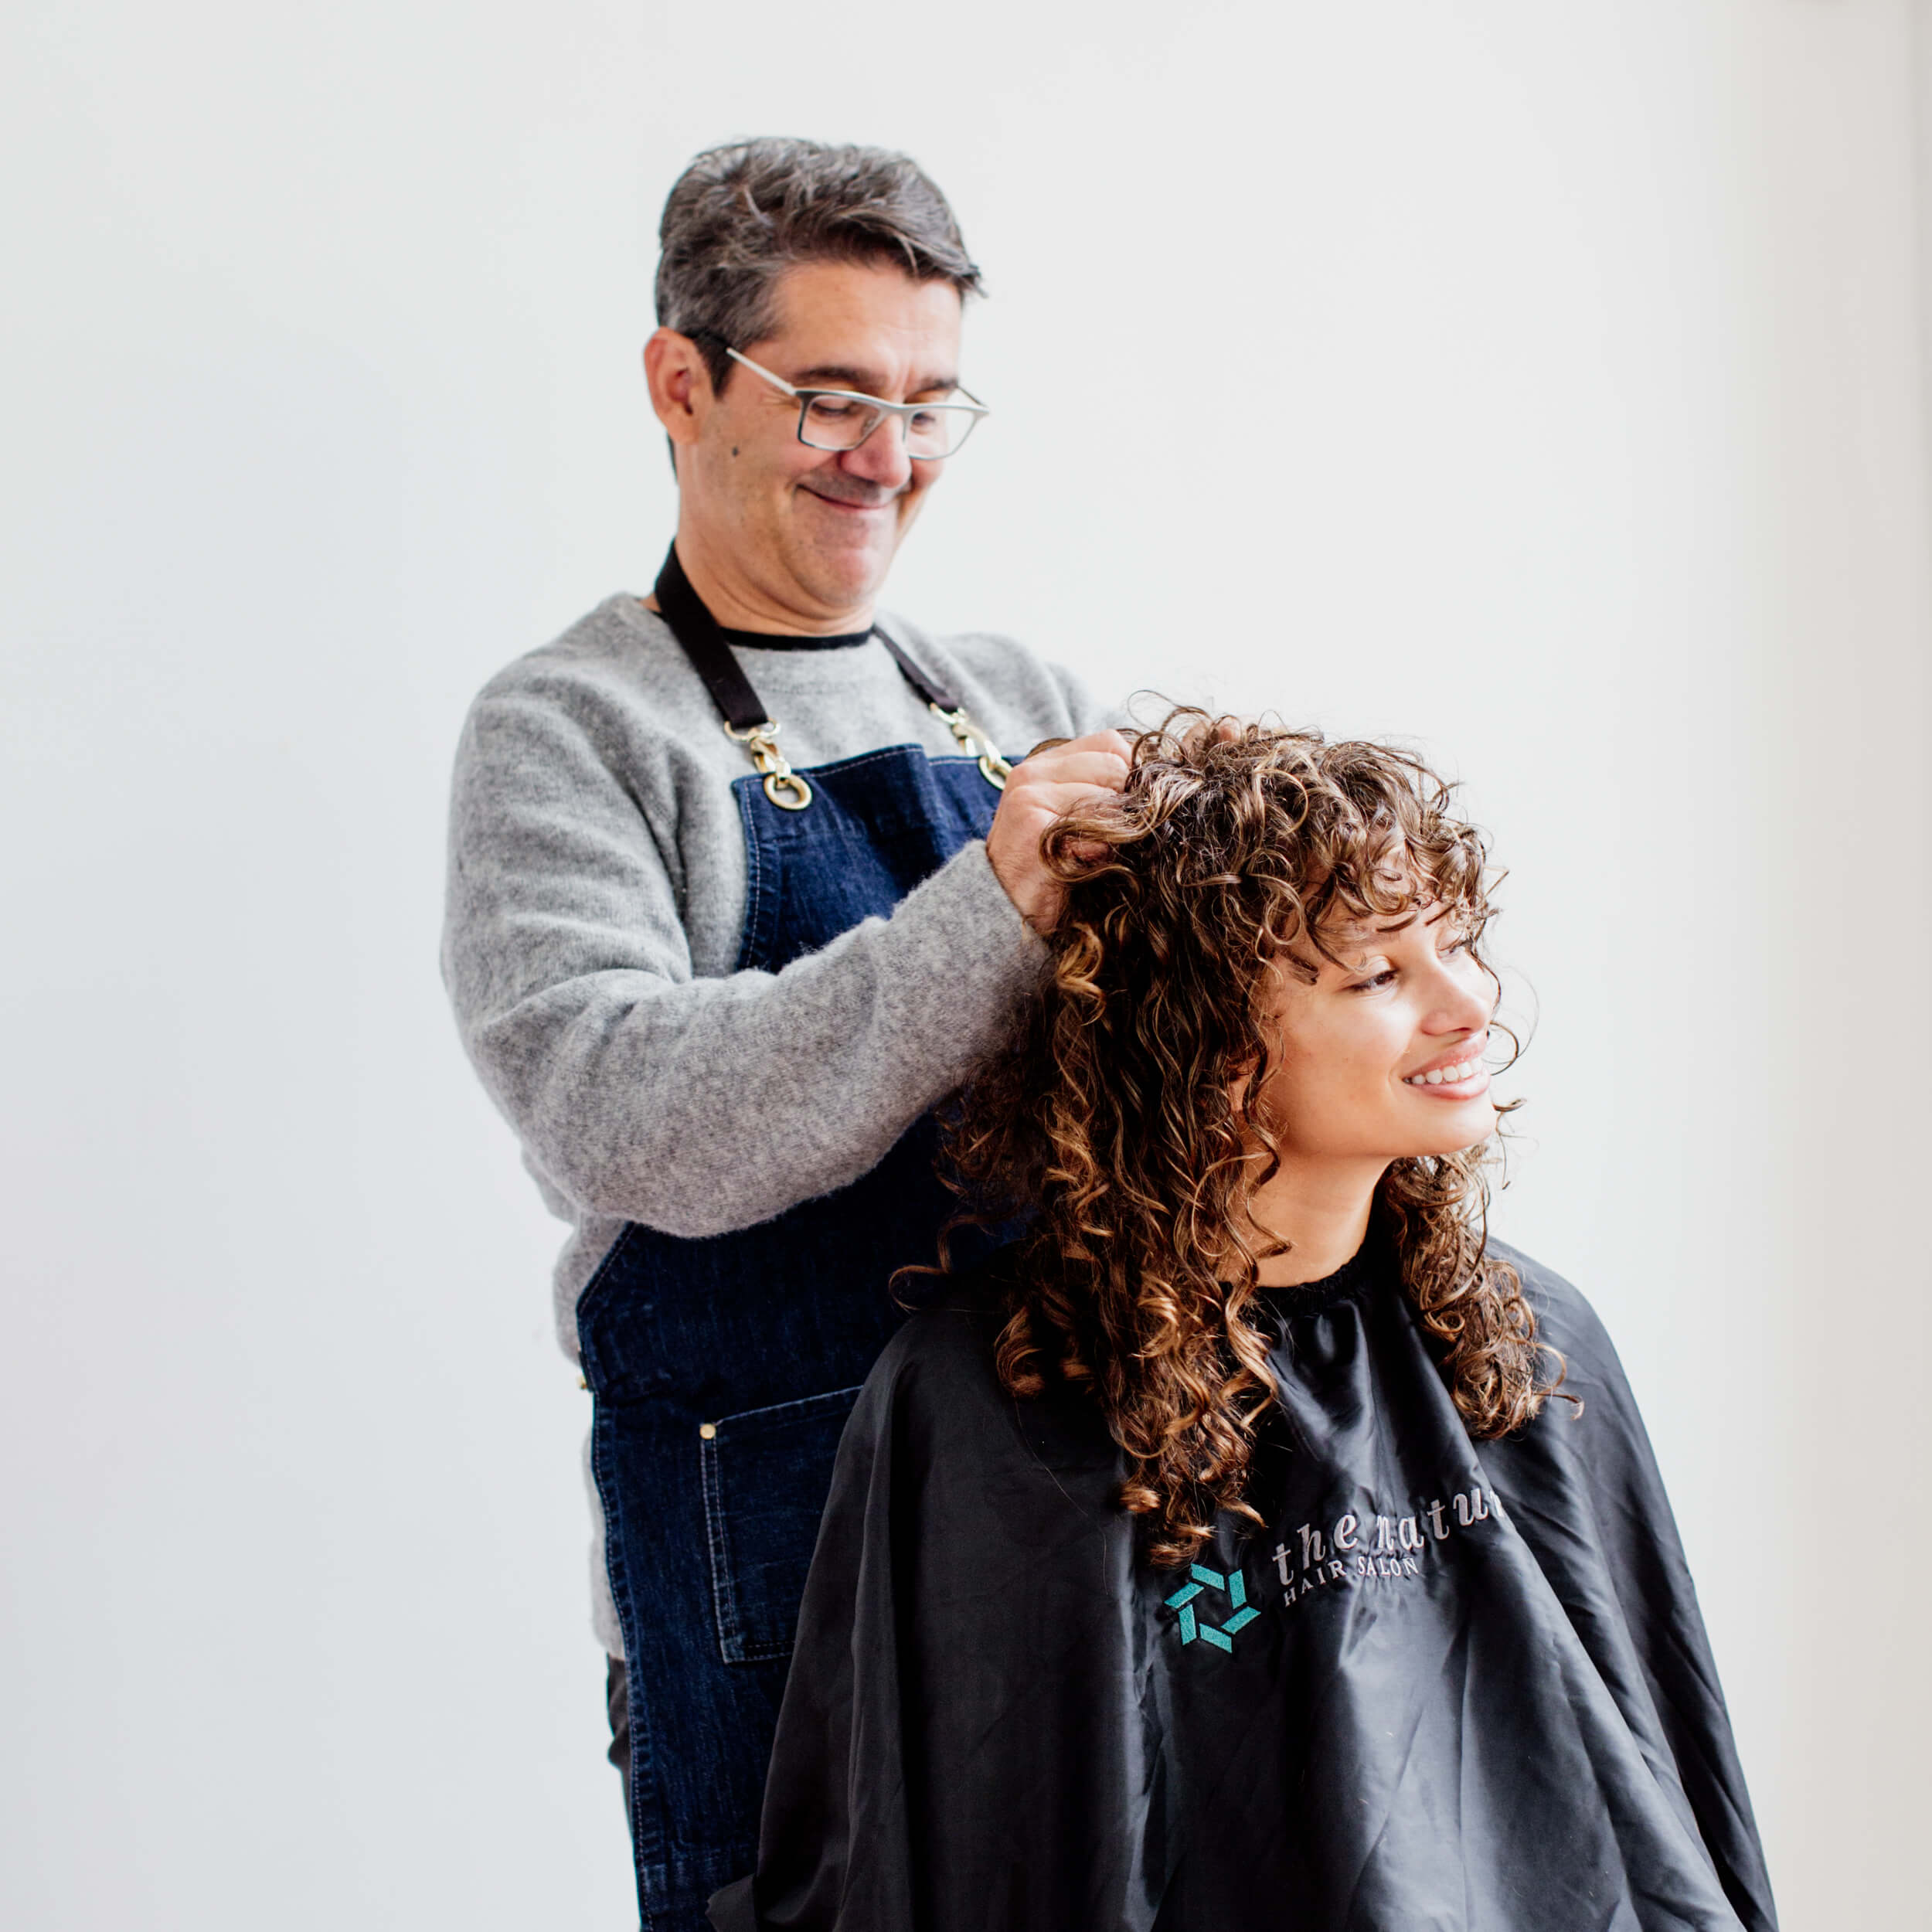 A hairdresser works on a client's hair.